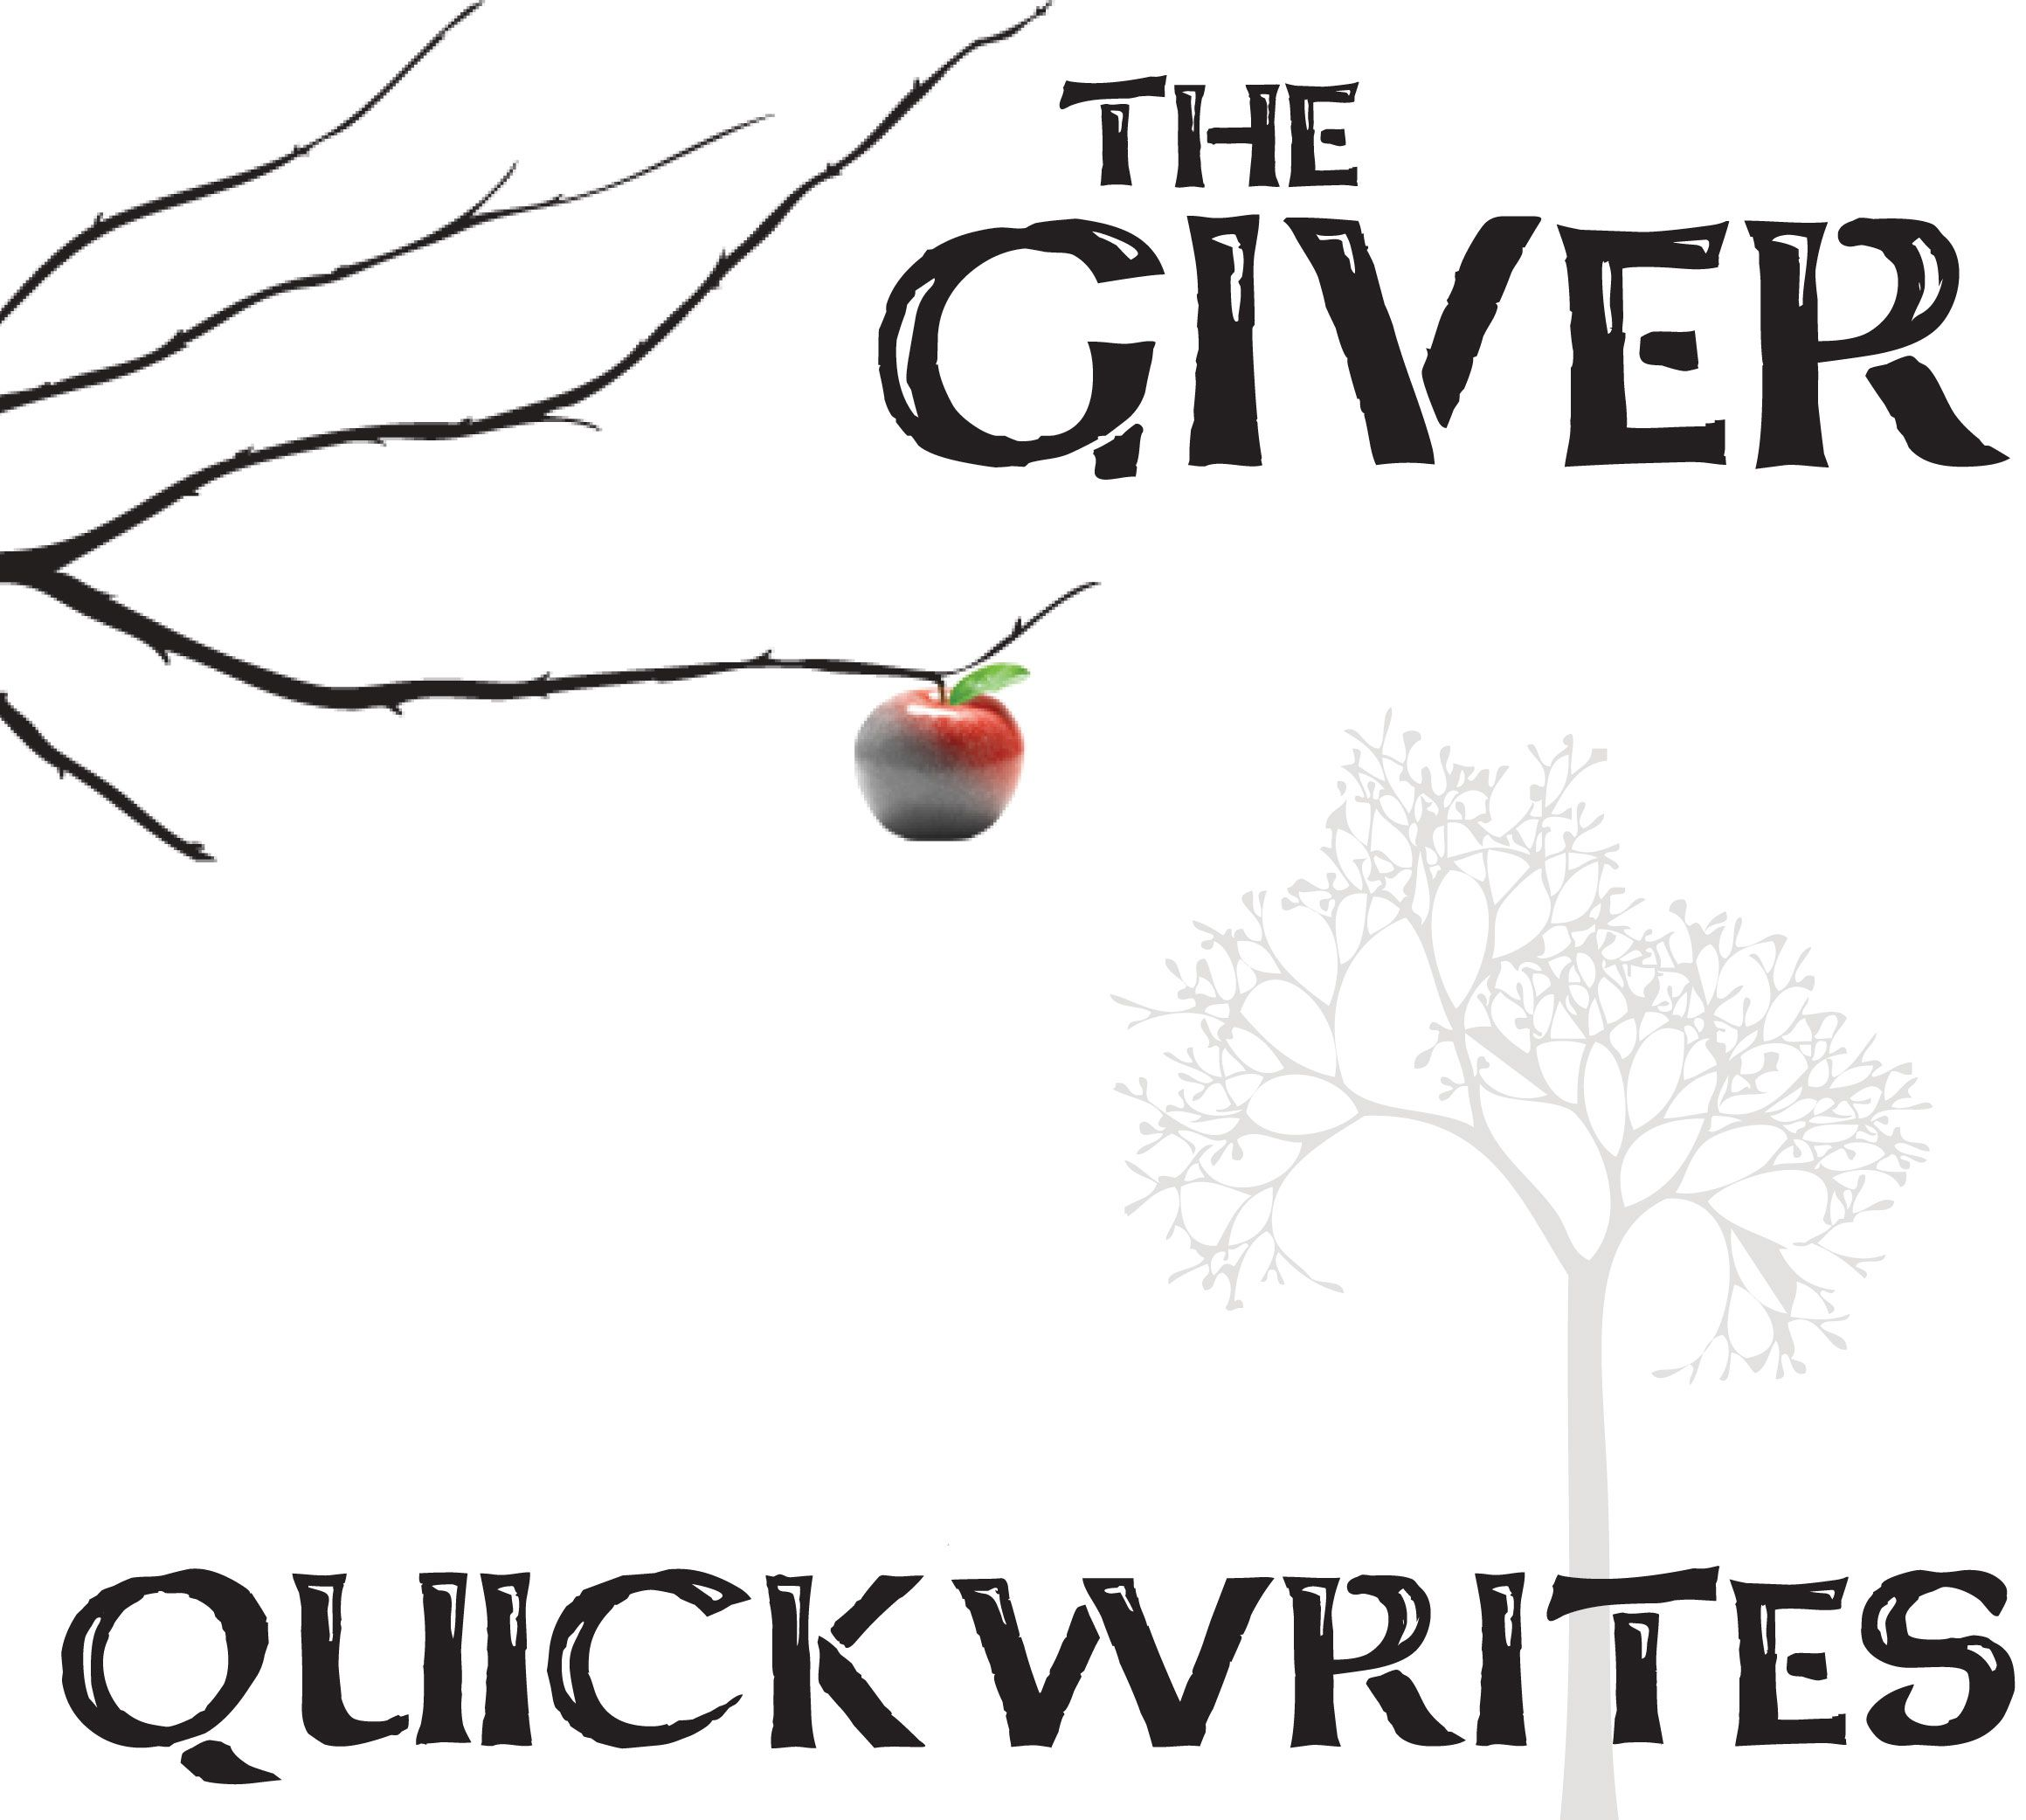 004 THE GIVER Journal Quickwrite Writing Prompts